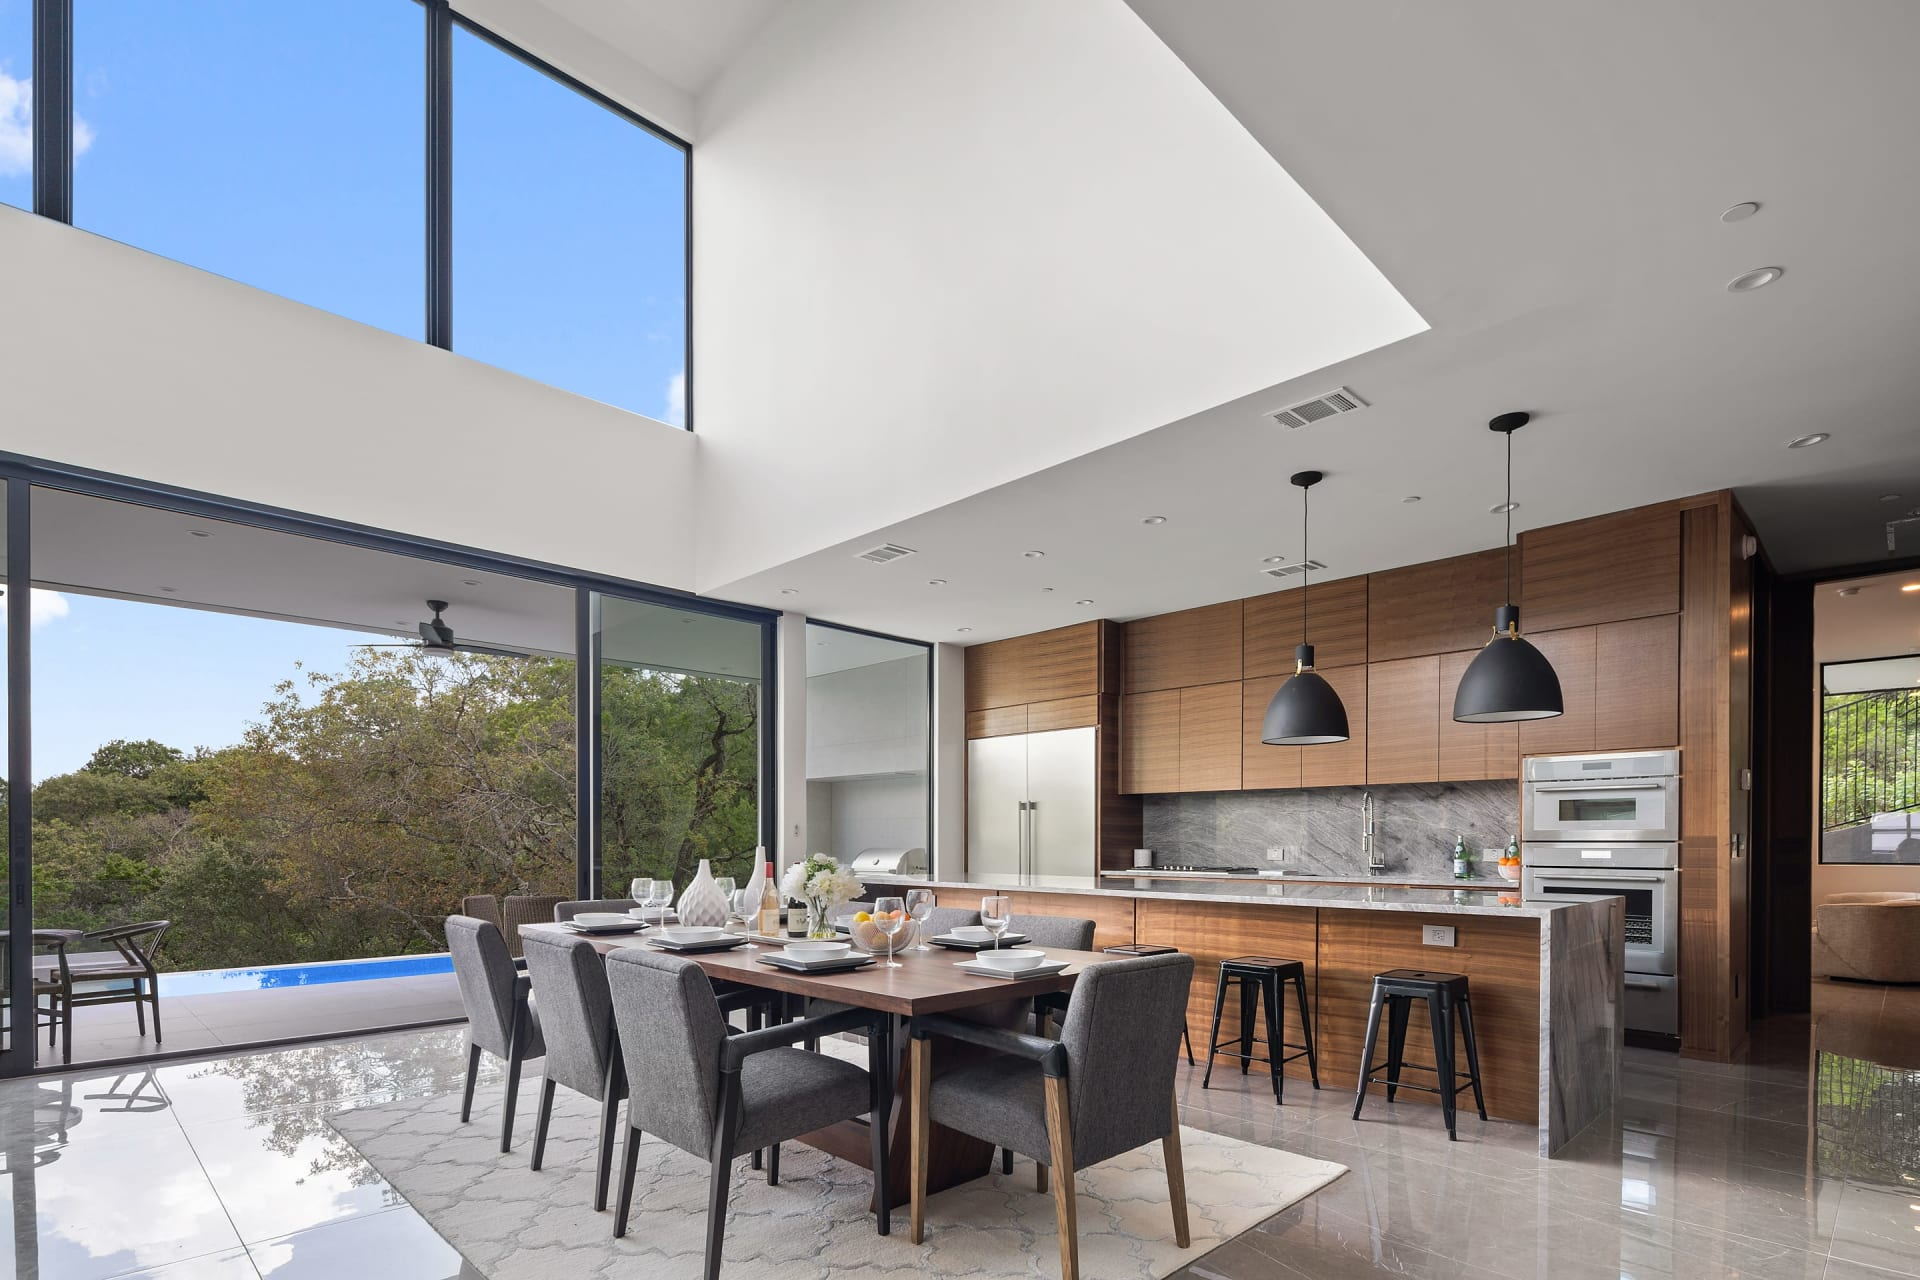 West Hollywood Home photo